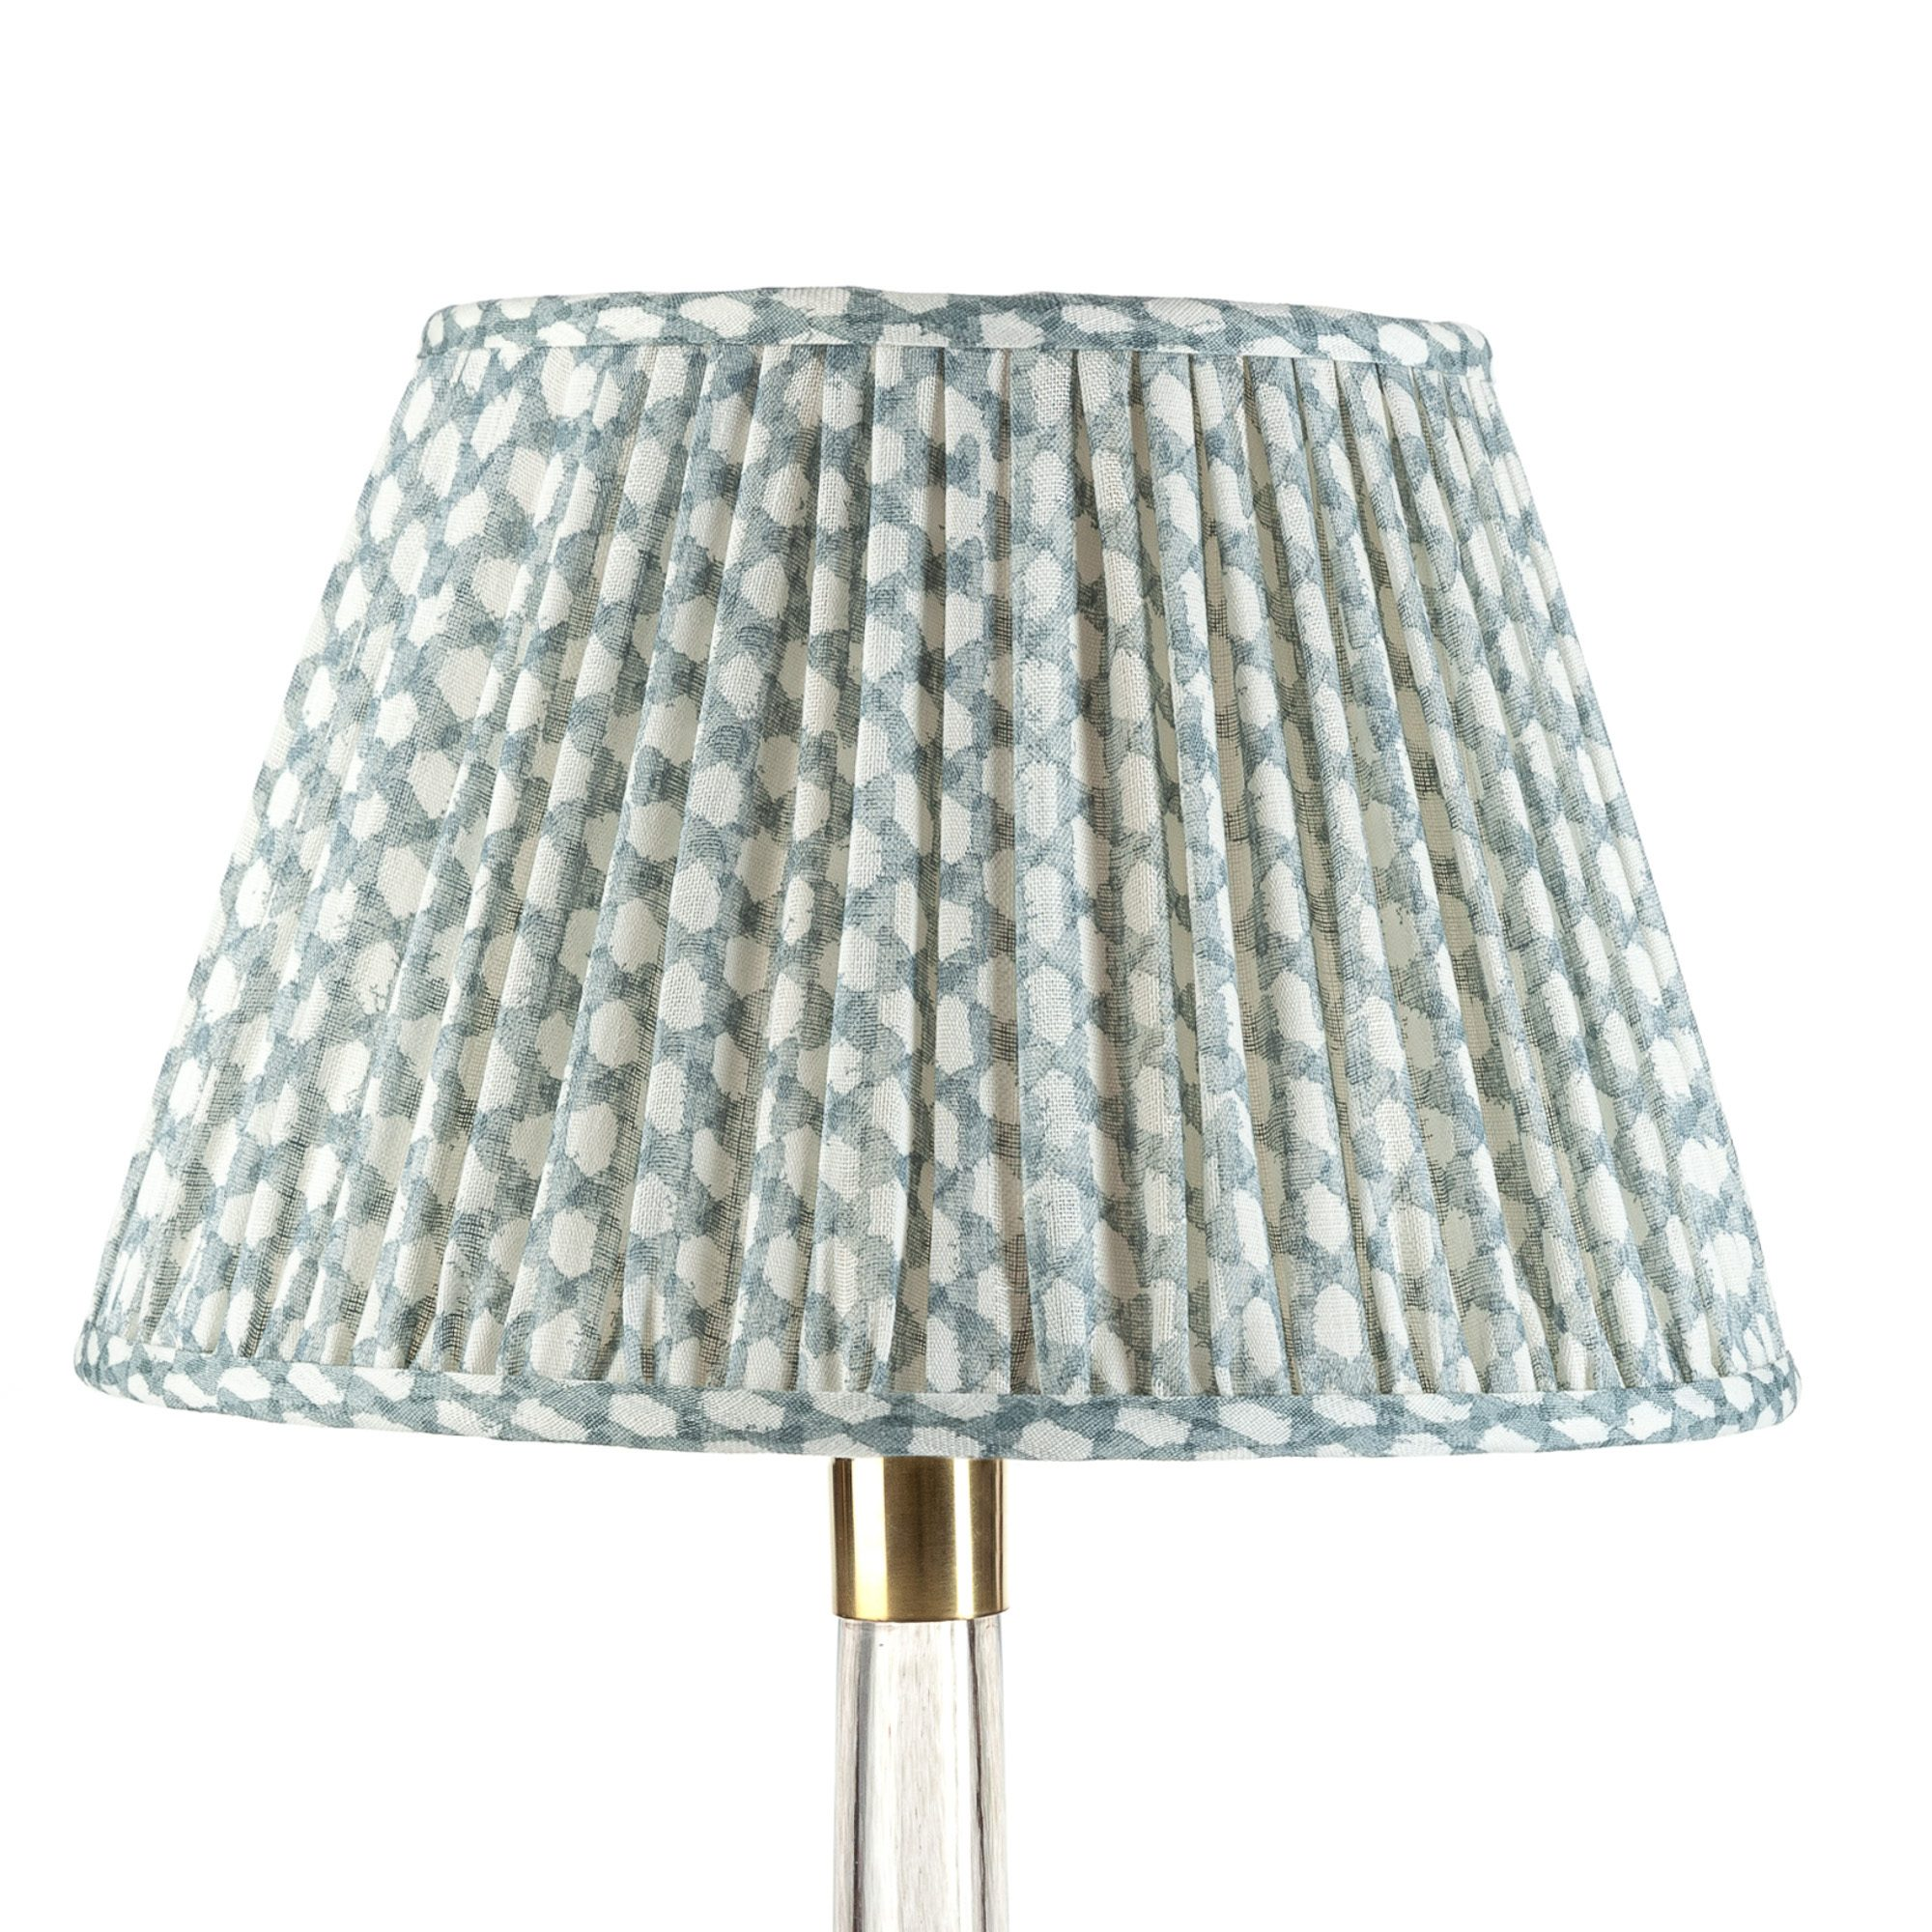 pg-036-empire-gathered-lampshade-in-light-blue-wicker-036-1